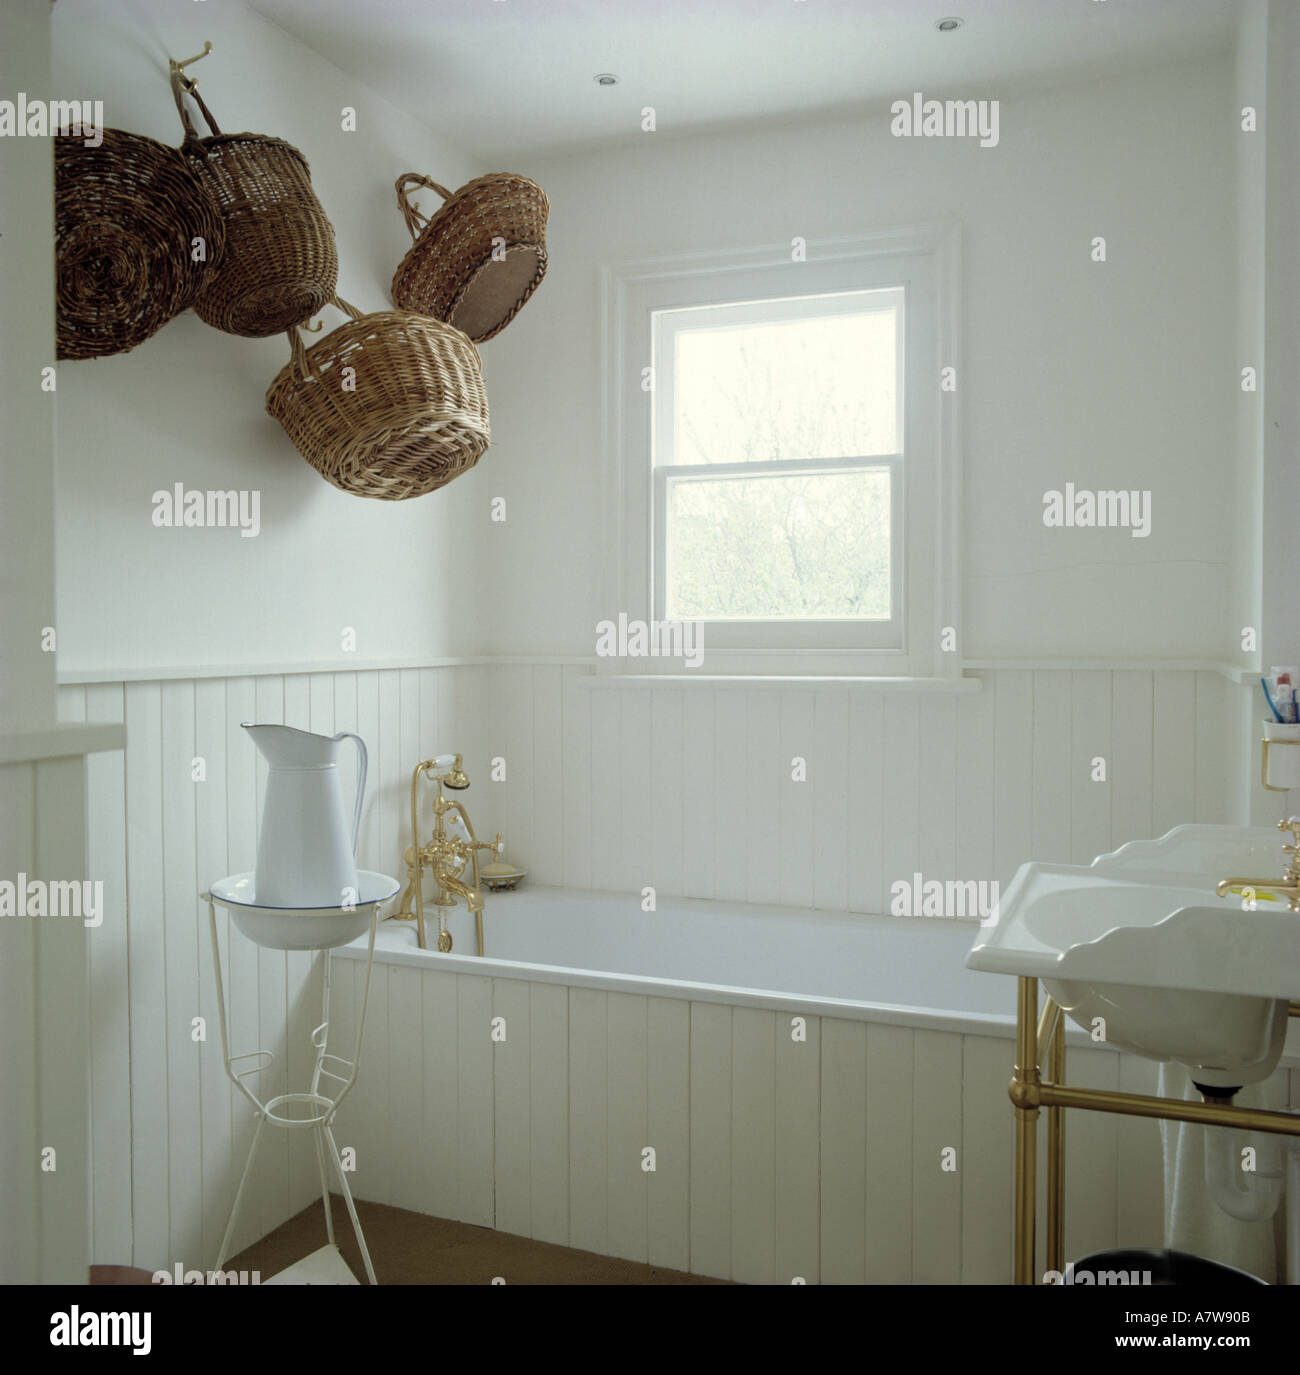 Collection of baskets on wall in white tongue groove panelling in simple  white bathroom with panelled bath. Collection of baskets on wall in white tongue groove panelling in